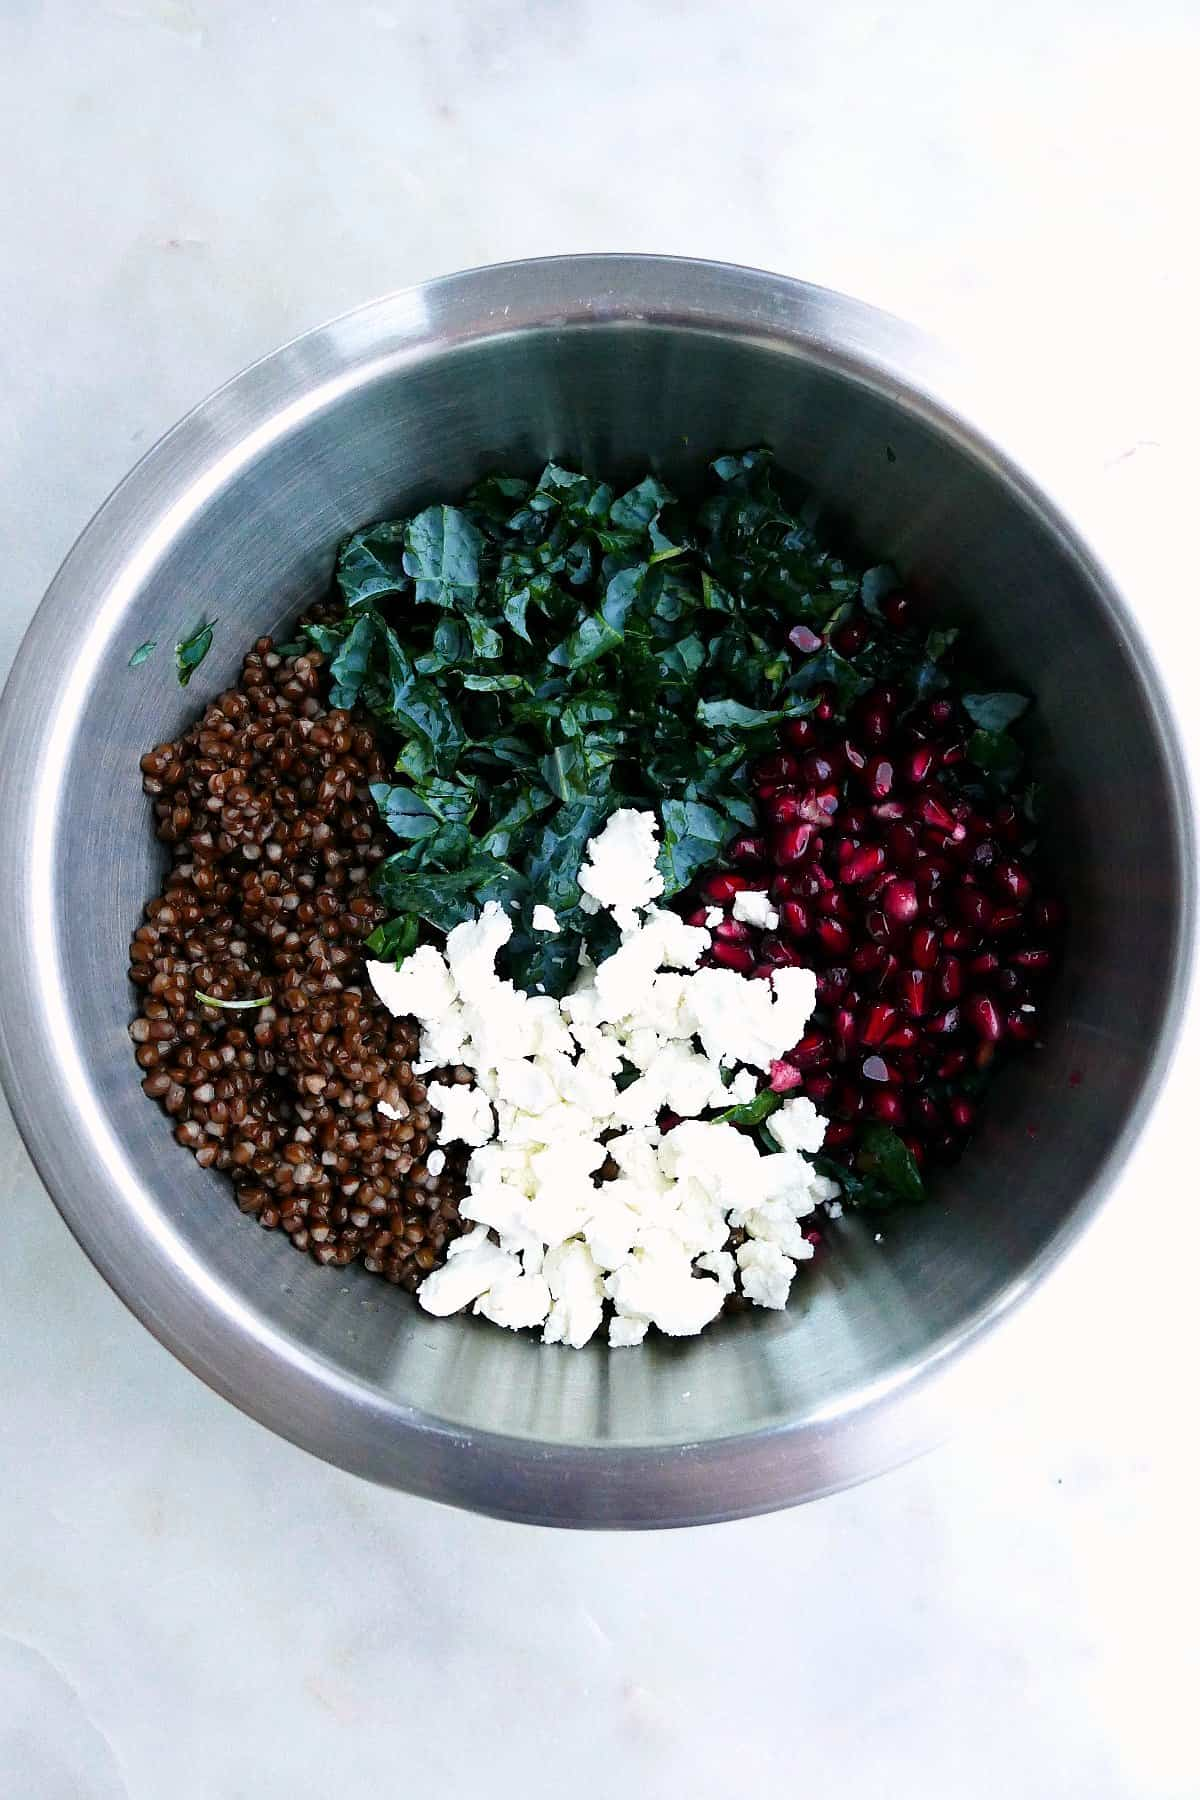 black lentils, finely chopped kale, goat cheese crumbles, and pomegranate arils in a bowl